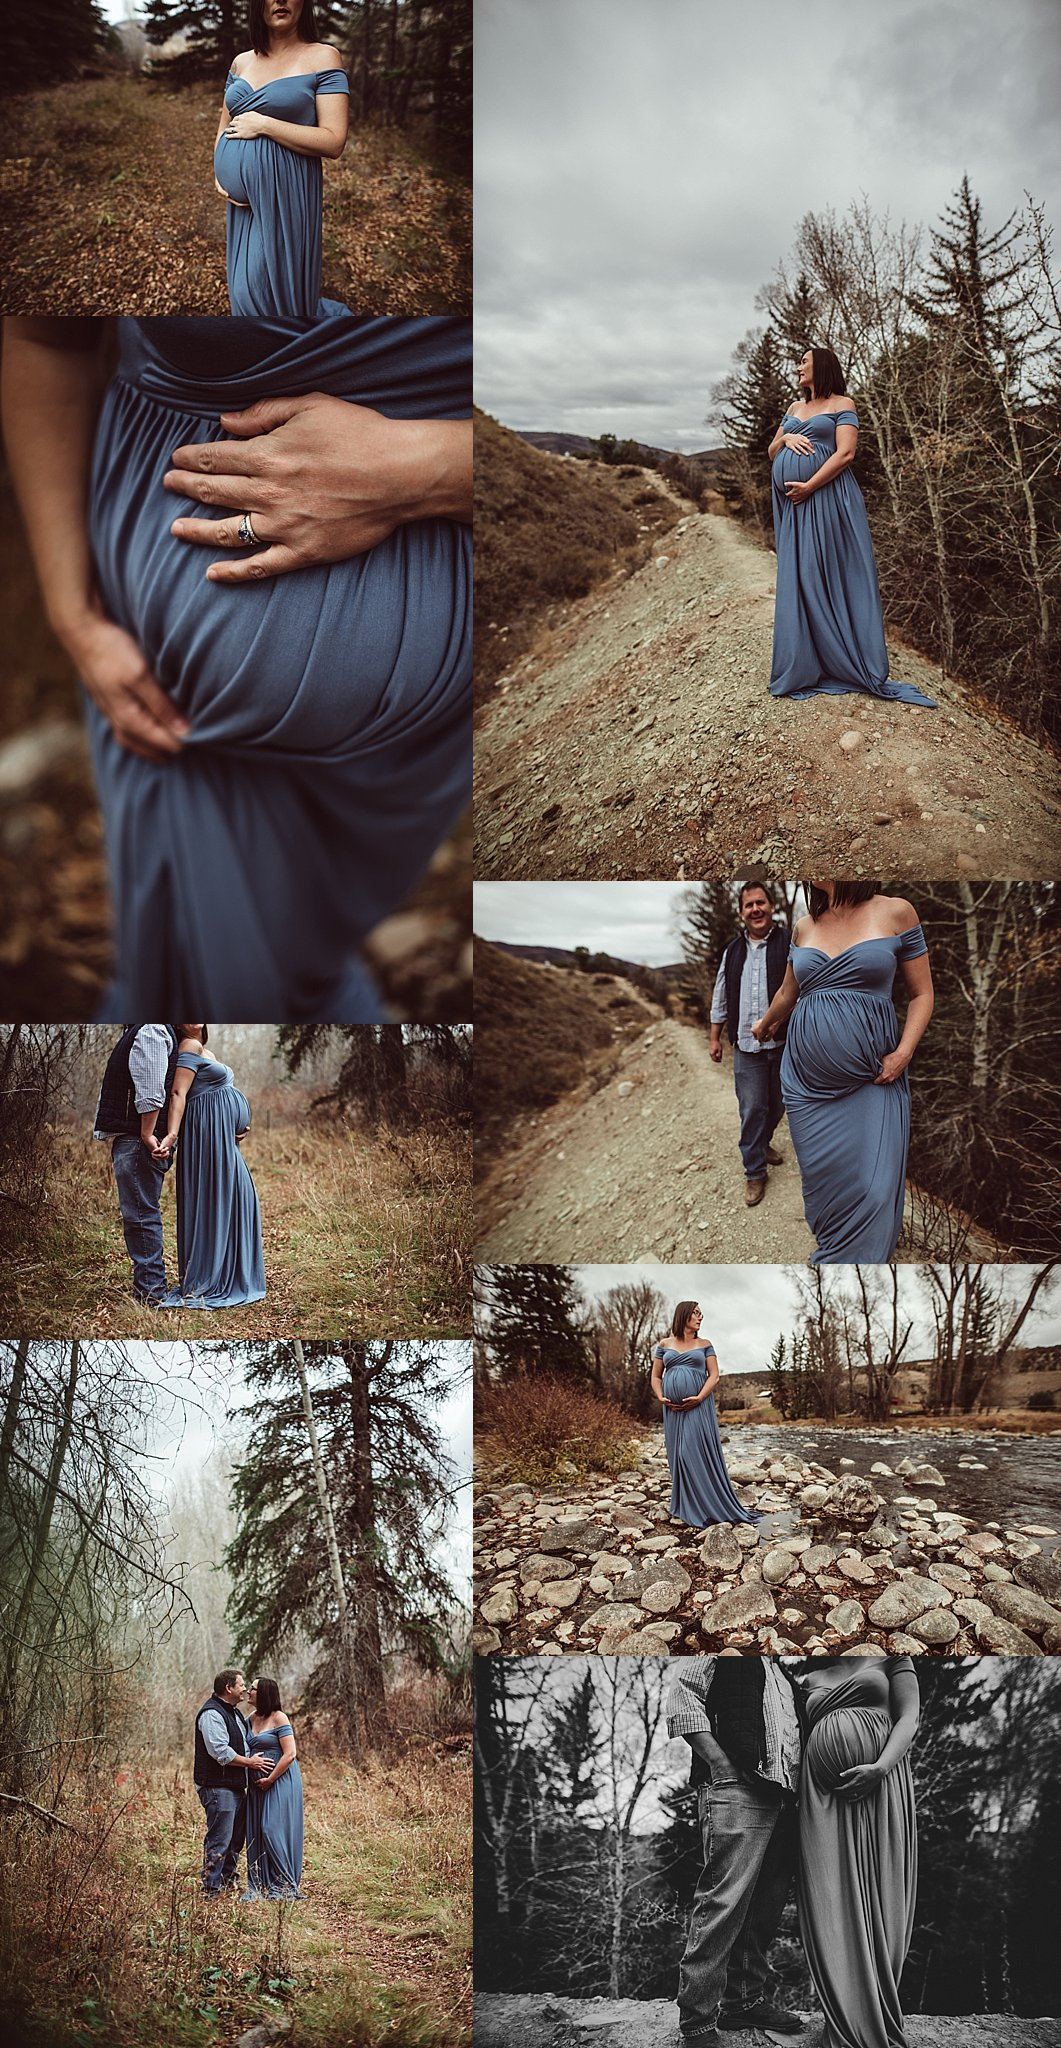 colorado-maternity-session-blue-dress-mountains-water-alison.jpg